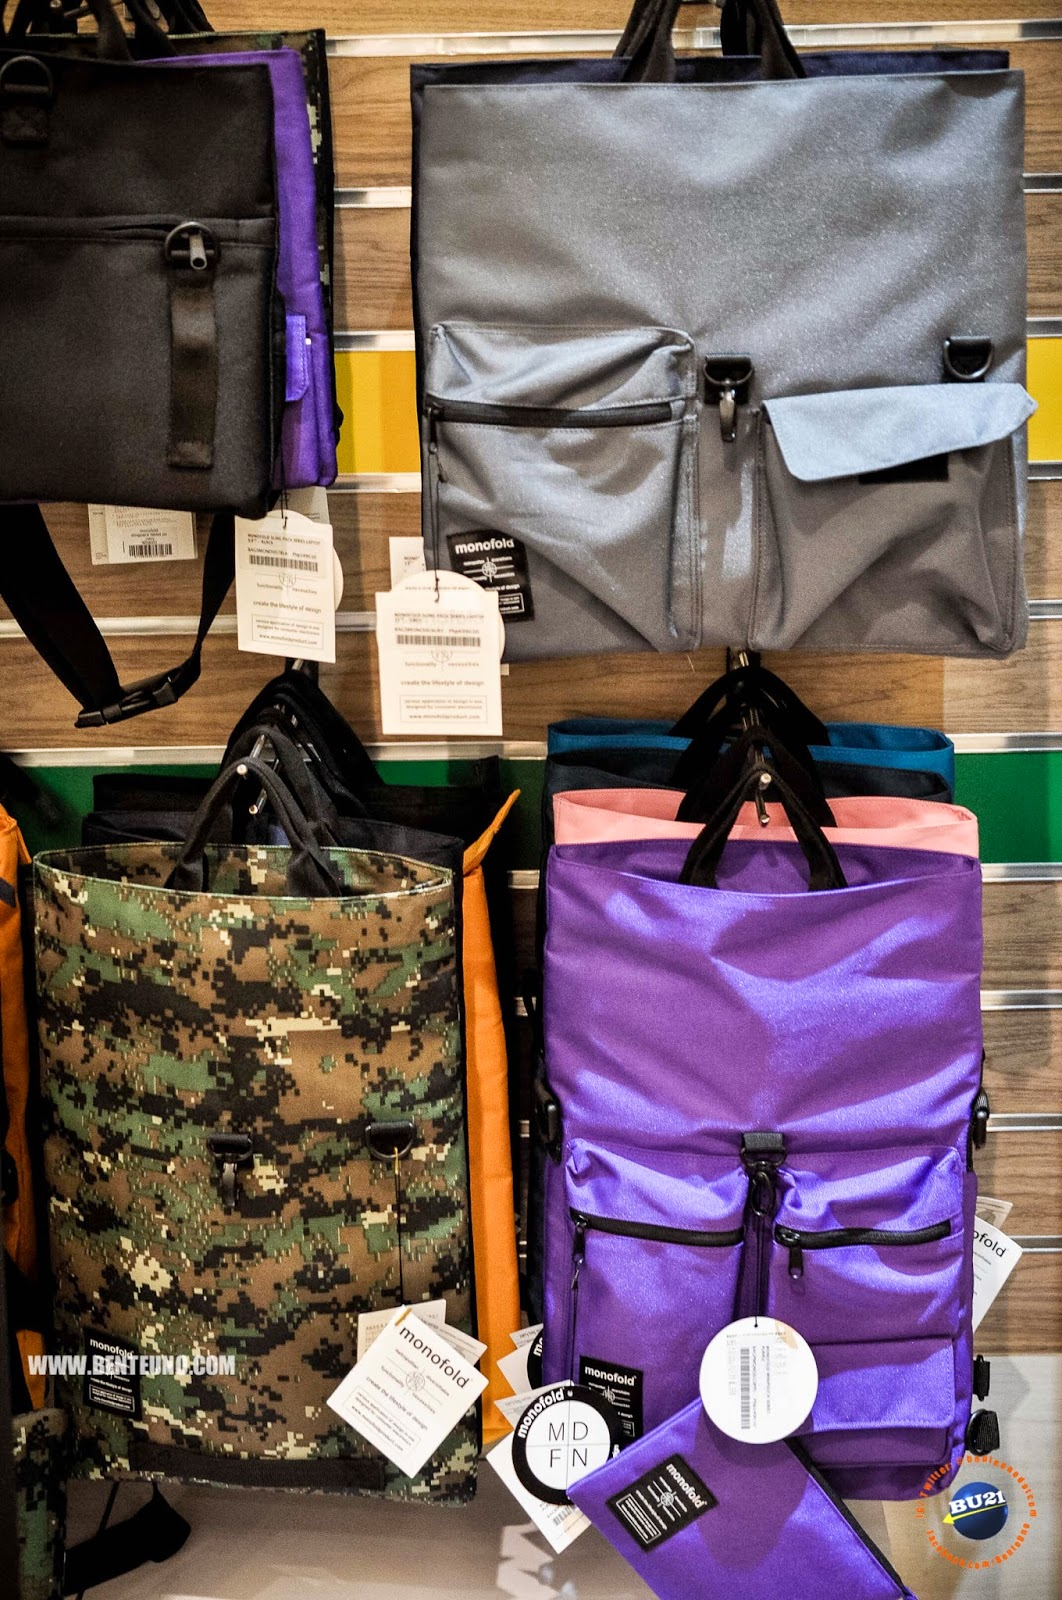 MONOFOLD bags for your gadgets and laptop